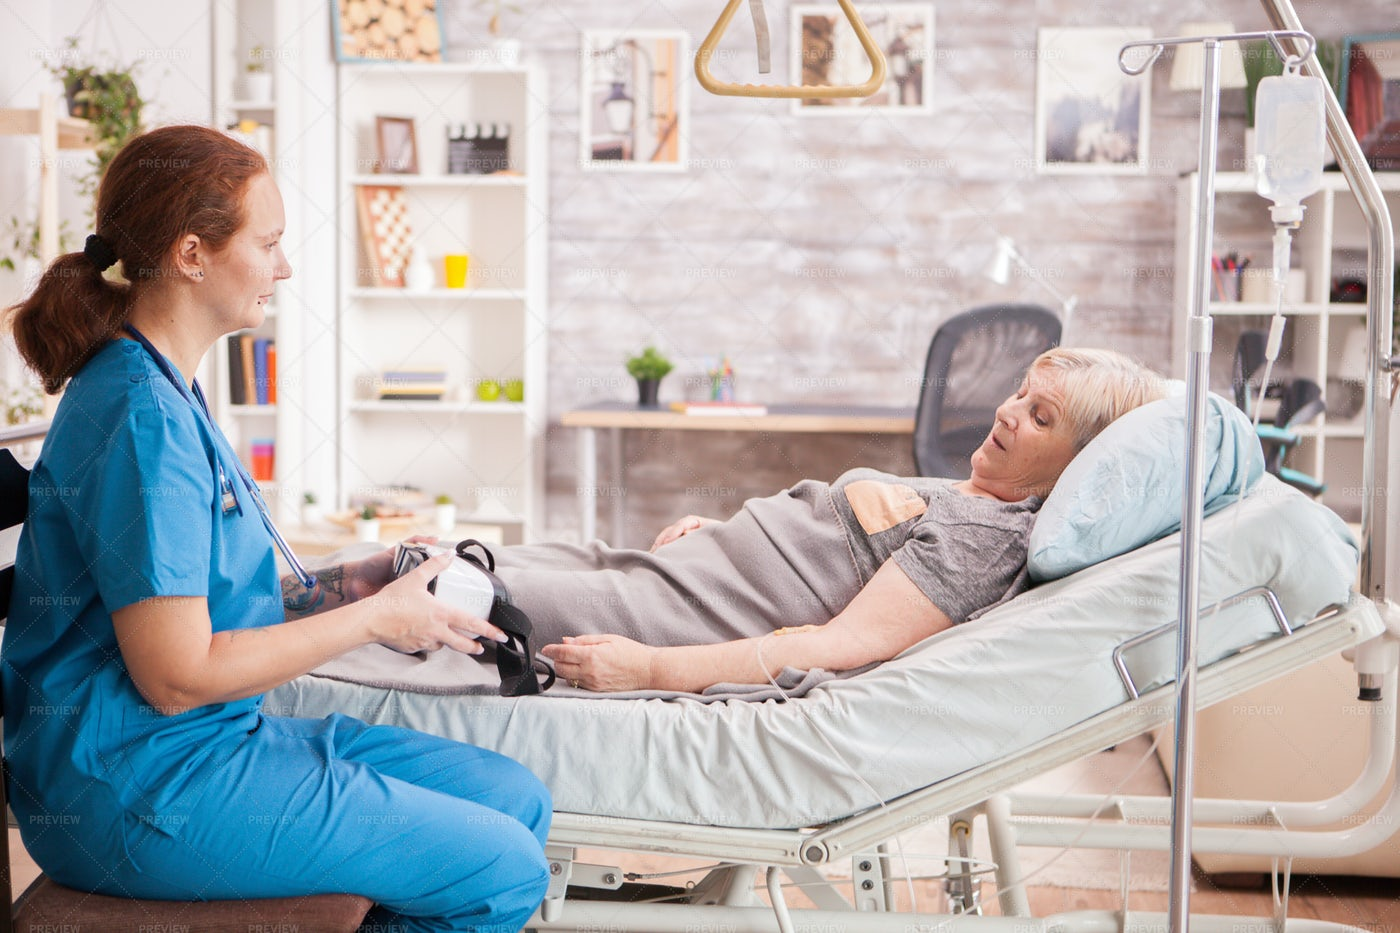 Vr Headsets In Nursing Home: Stock Photos